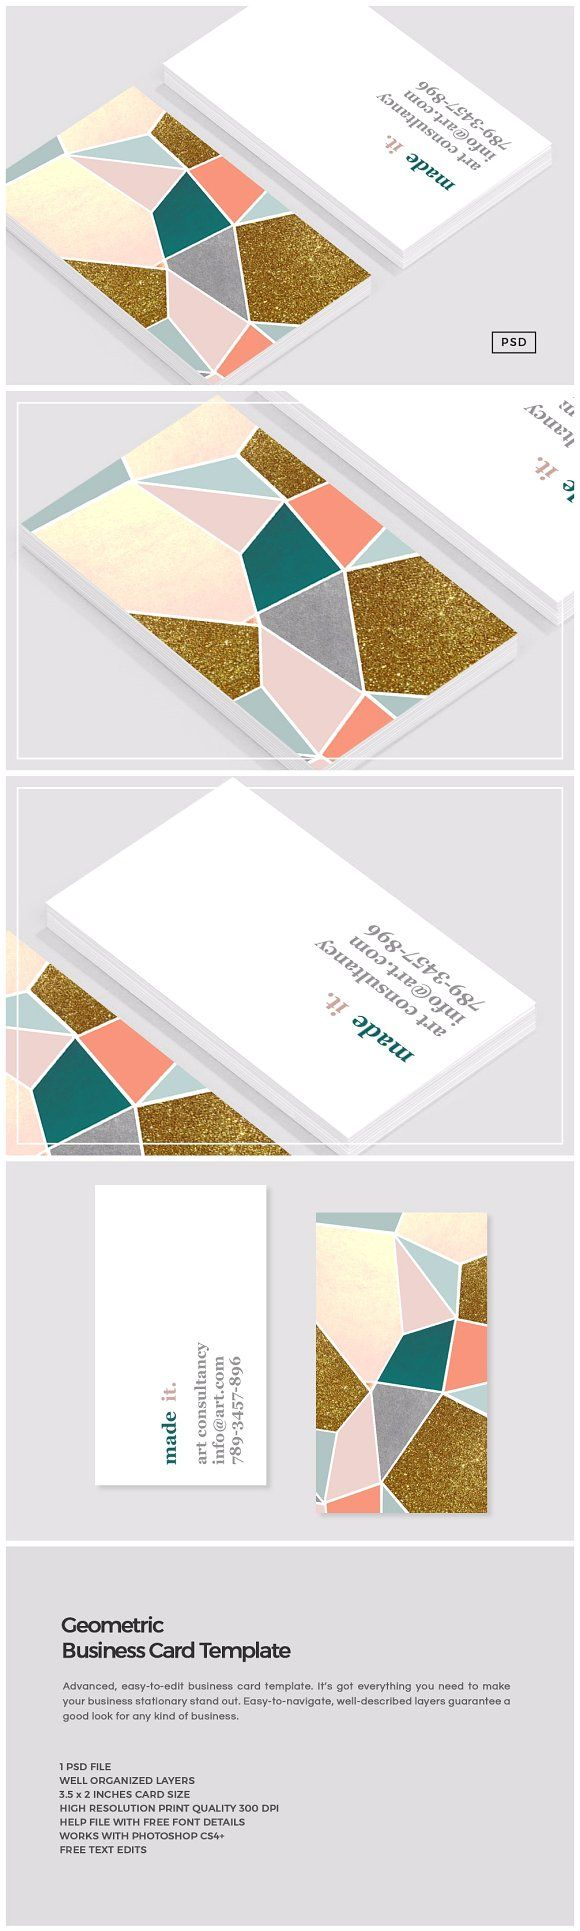 Geometric Business Card Template by The Design Label on @creativemarket